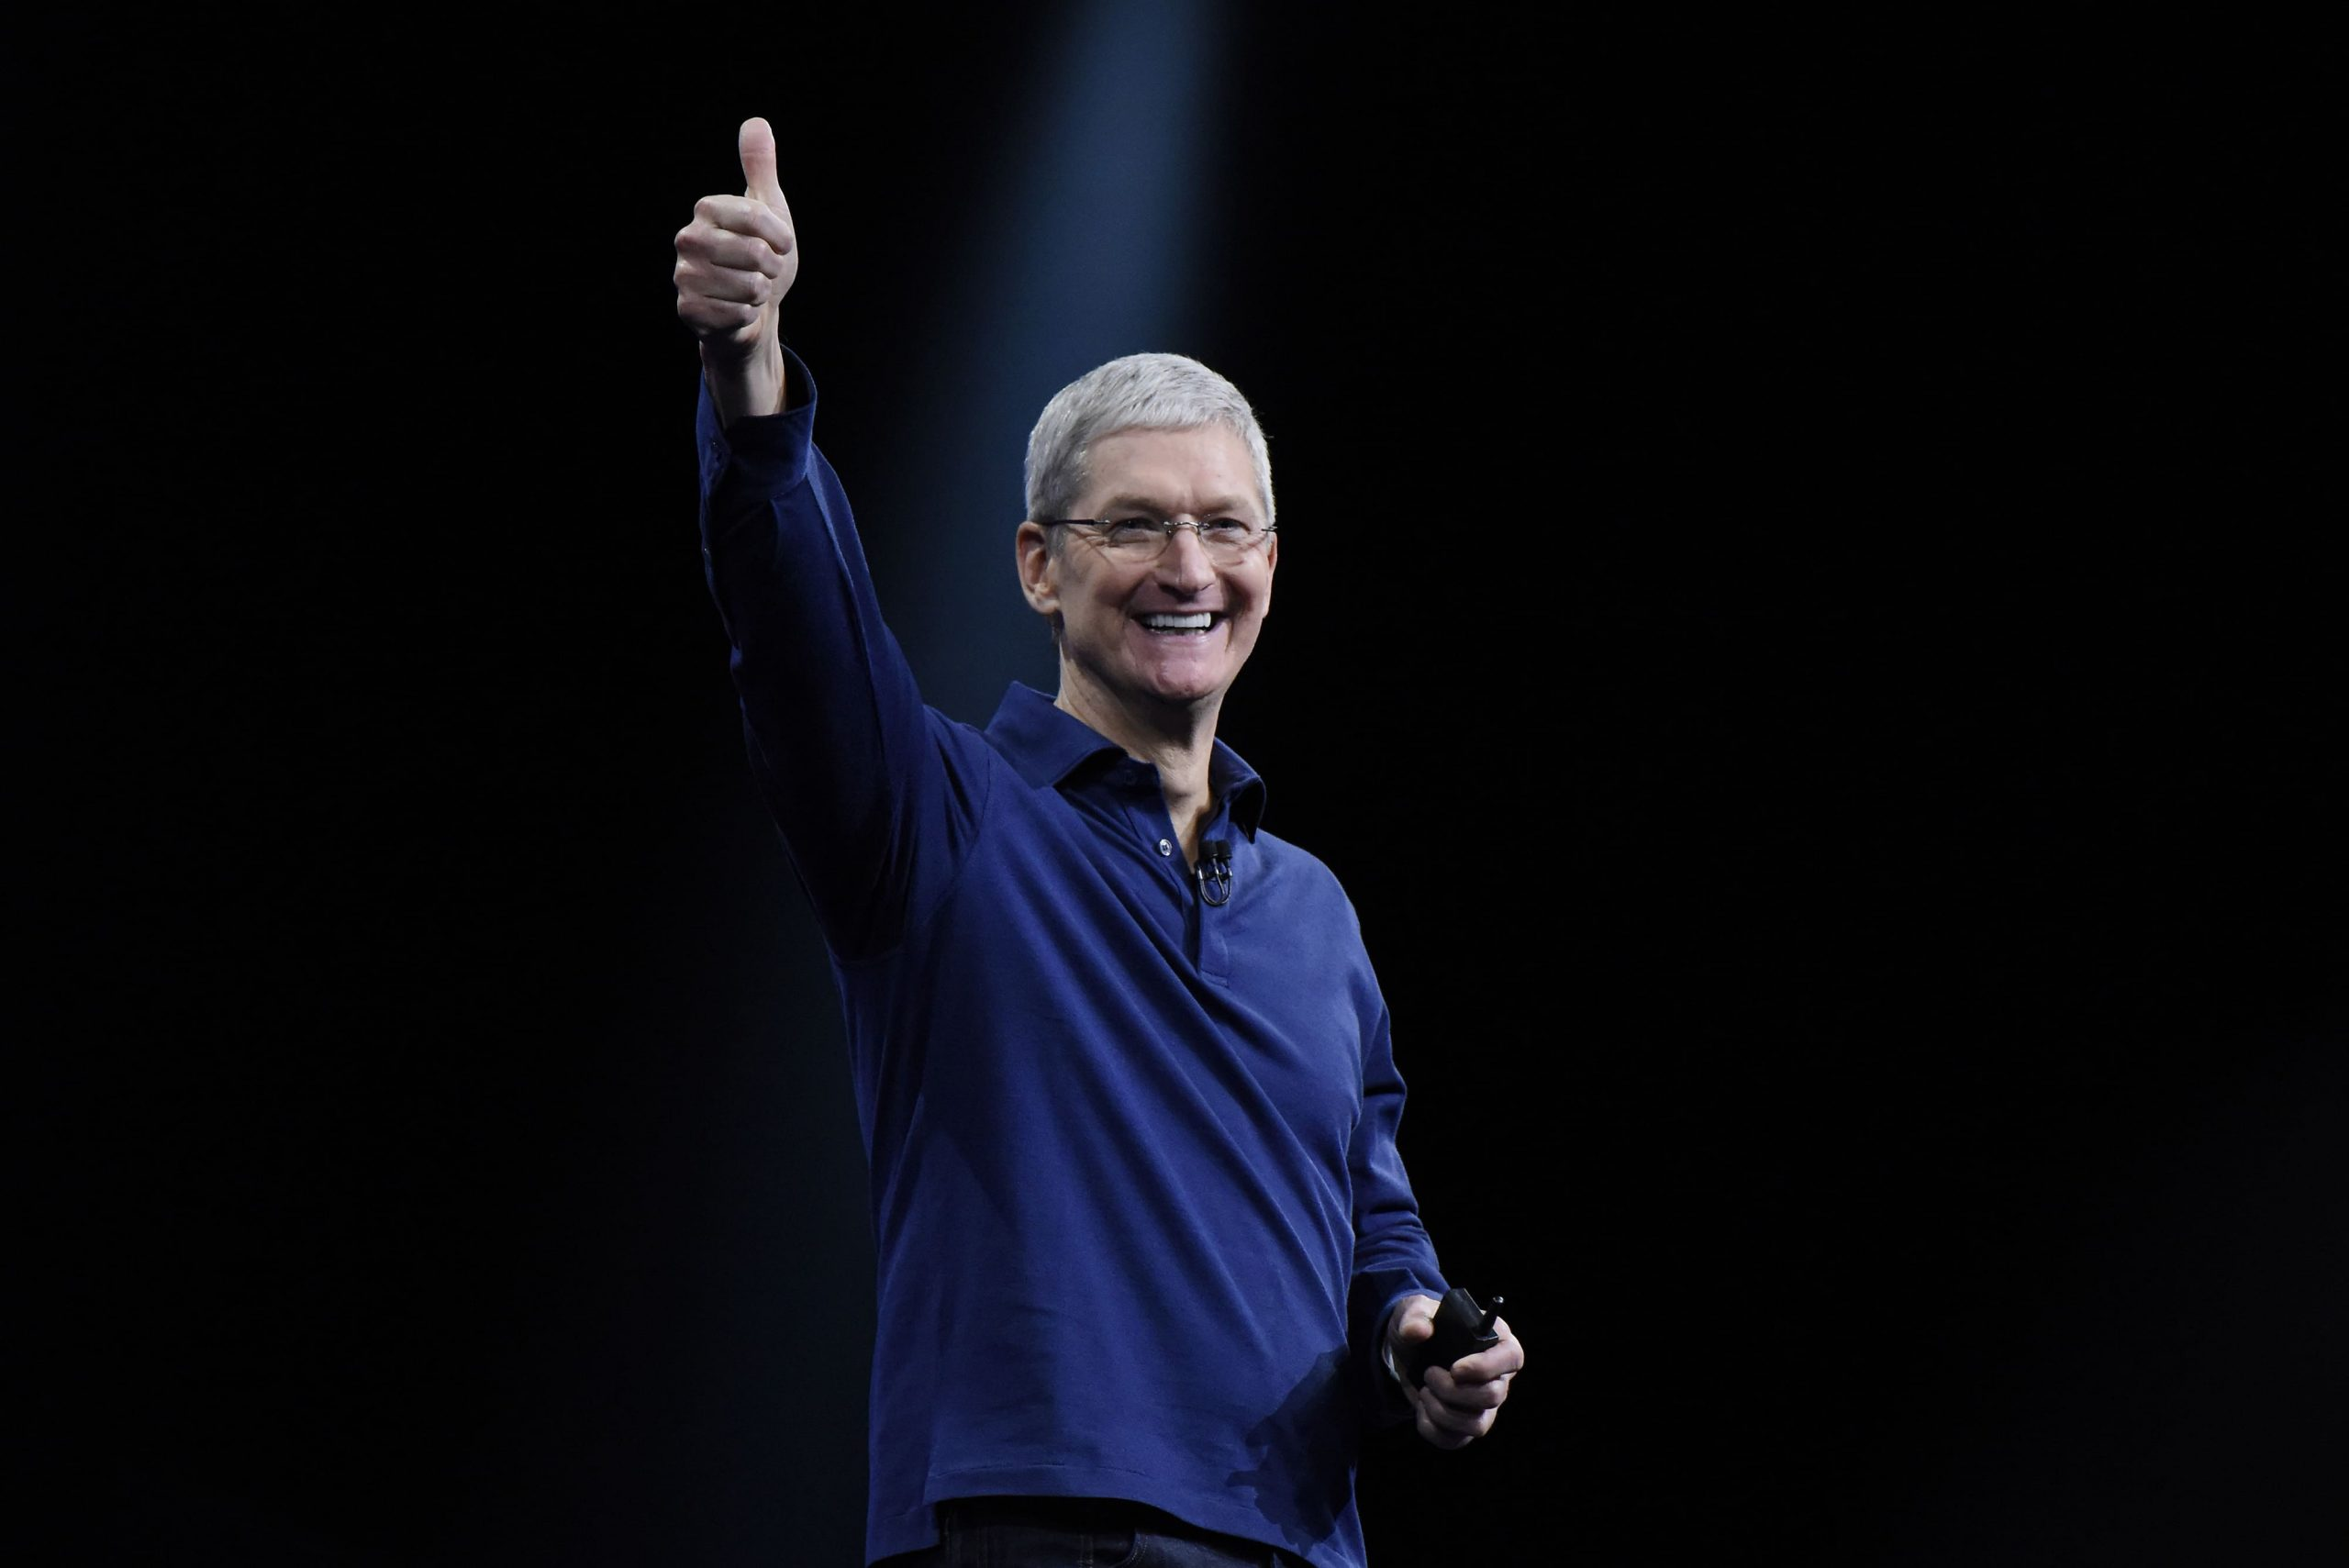 tim cook android malware corpo 2